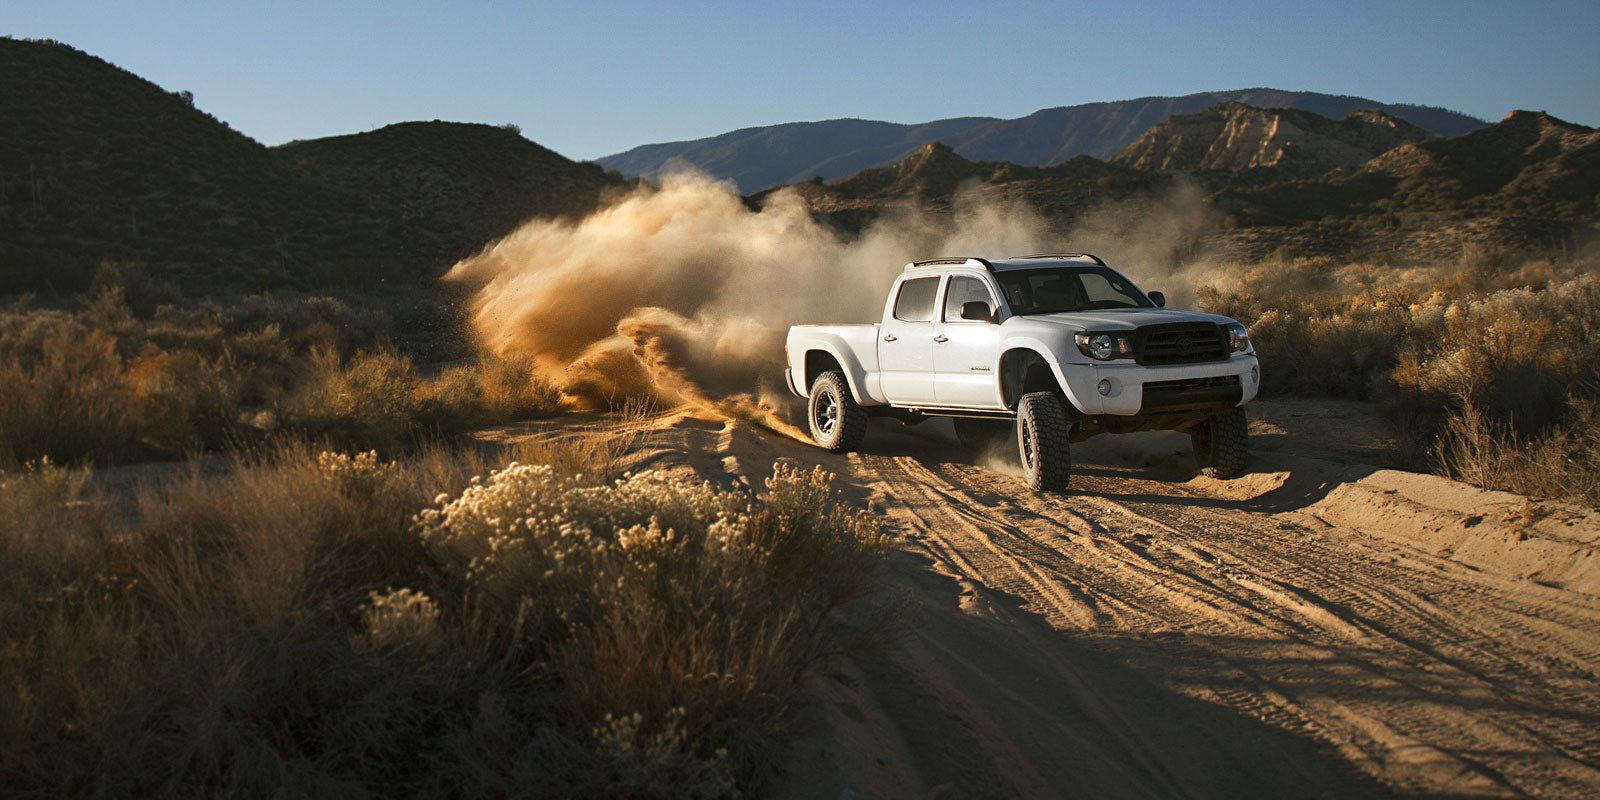 Toyota Tacoma Shock Buying Guide